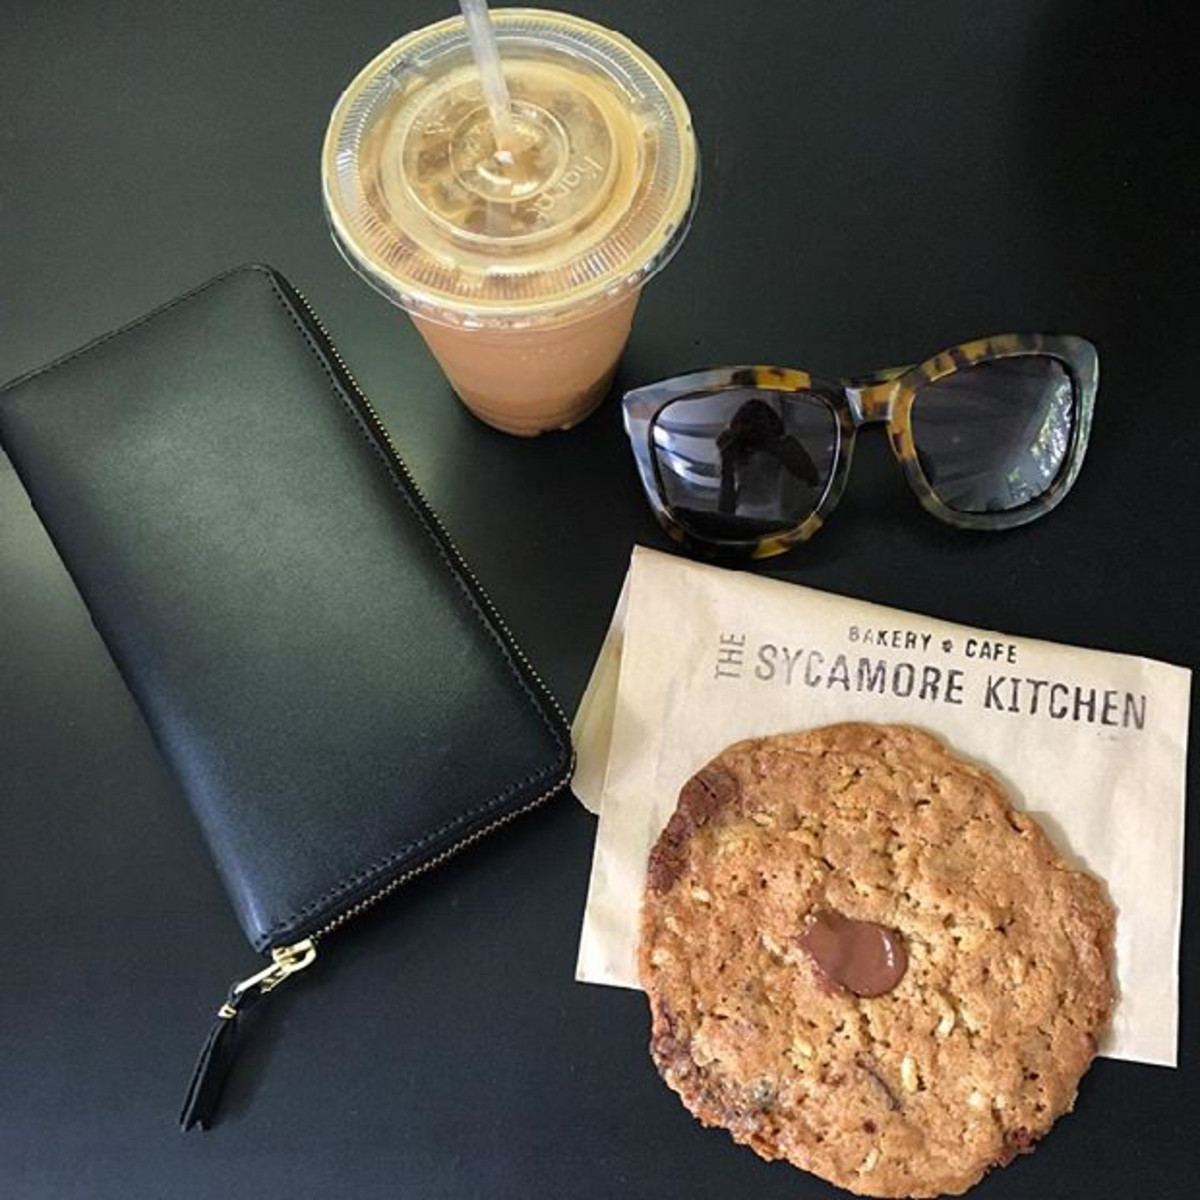 The BEST rye chocolate chip cookie from The Sycamore Kitchen that Emily told me about